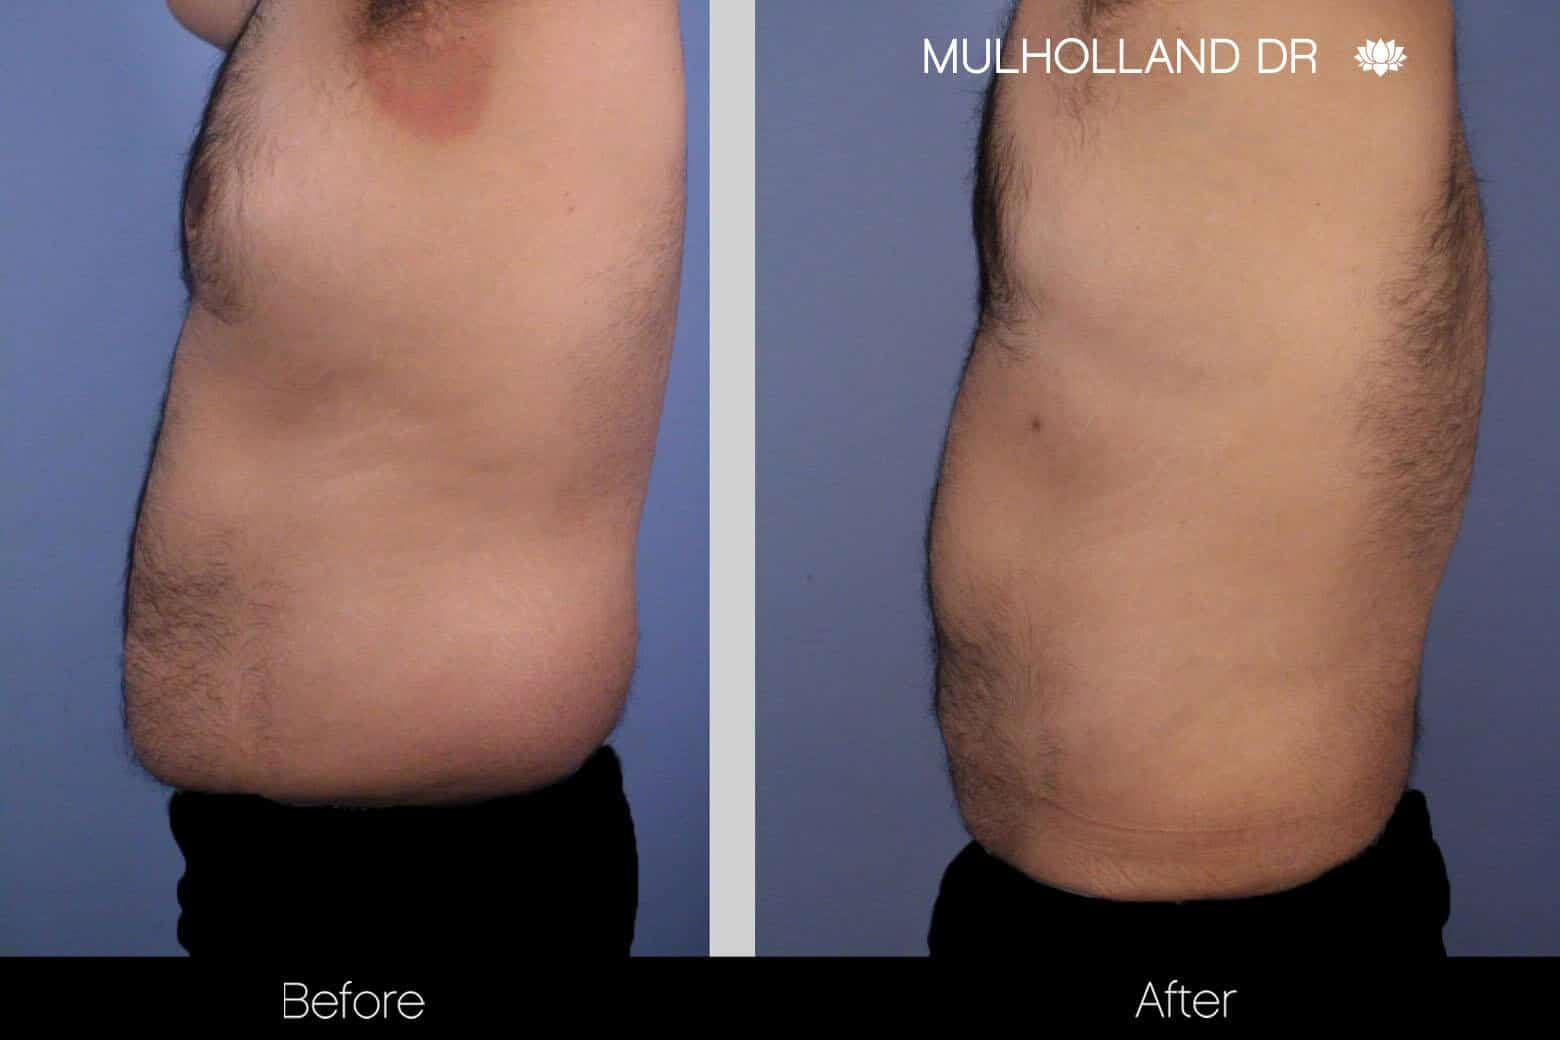 Abdomen Liposuction - Before and After Gallery - Patient Photo 8